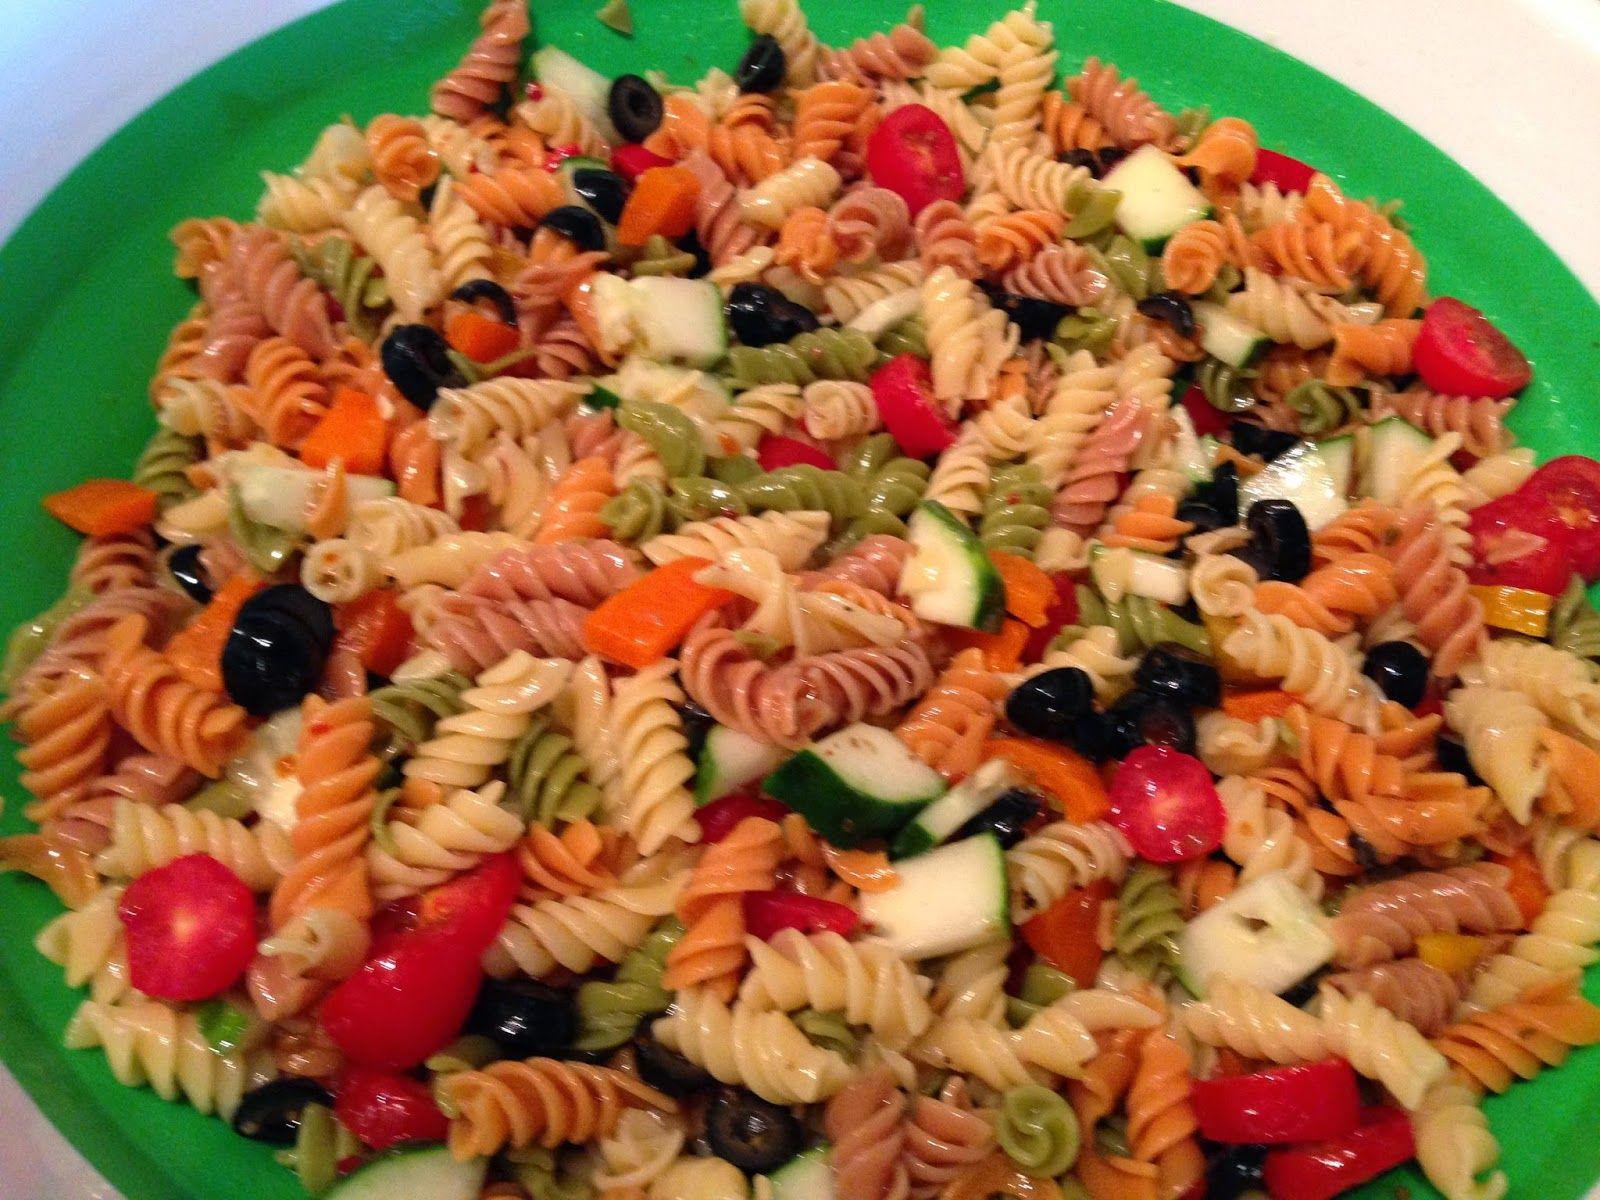 This healthy veggie pasta is a crowd pleaser and I love to bring it for potlucks and family gatherings!  #sicilian-recipes  #sicilia #sicily   #italian-food